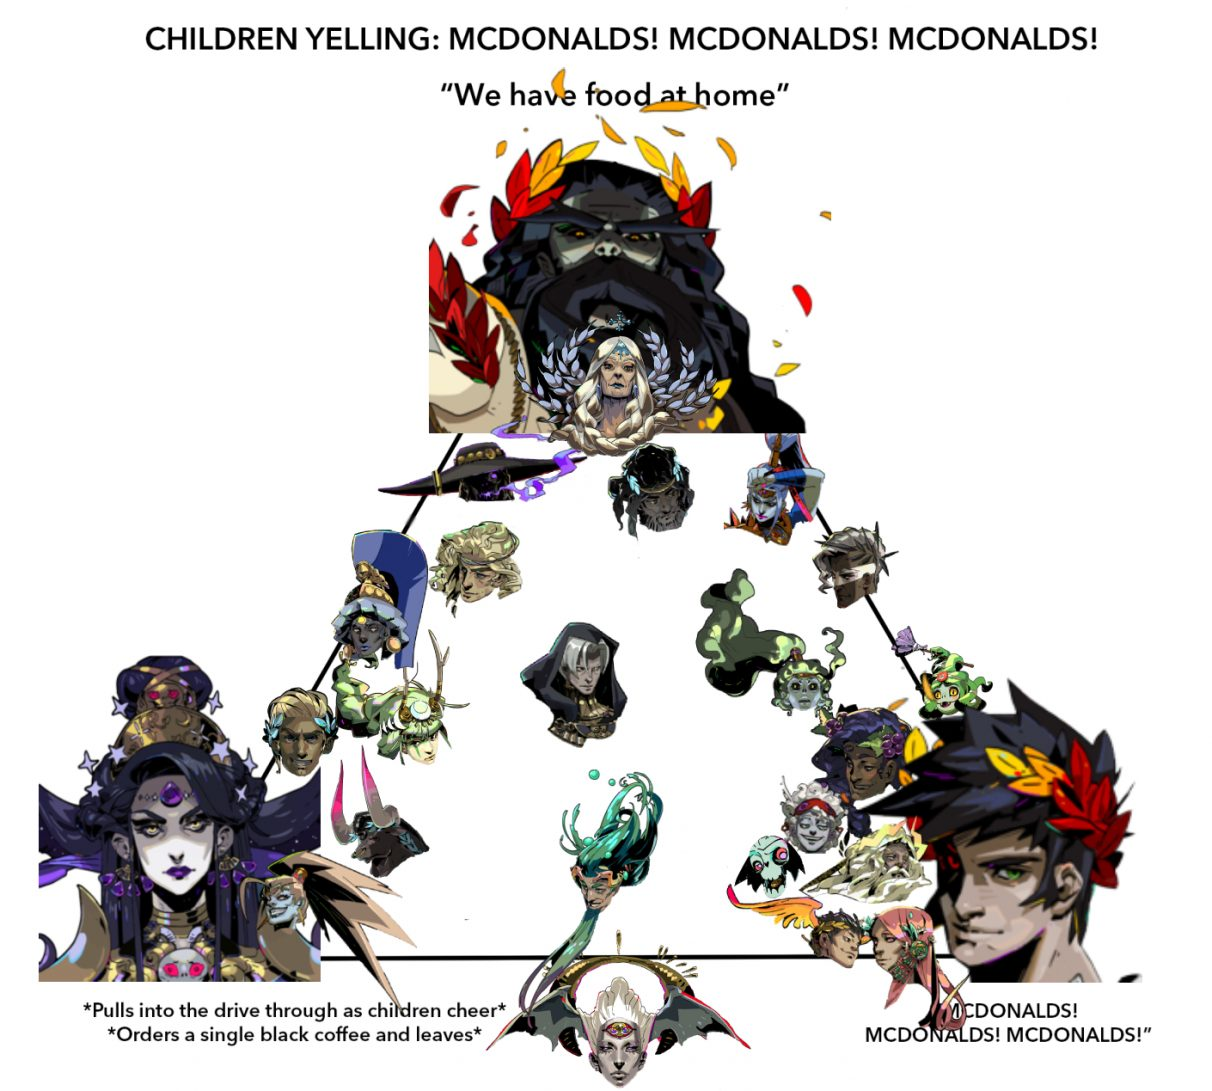 Another version of the McDonald's alignment chart, this time with all the characters from Hades placed on it.